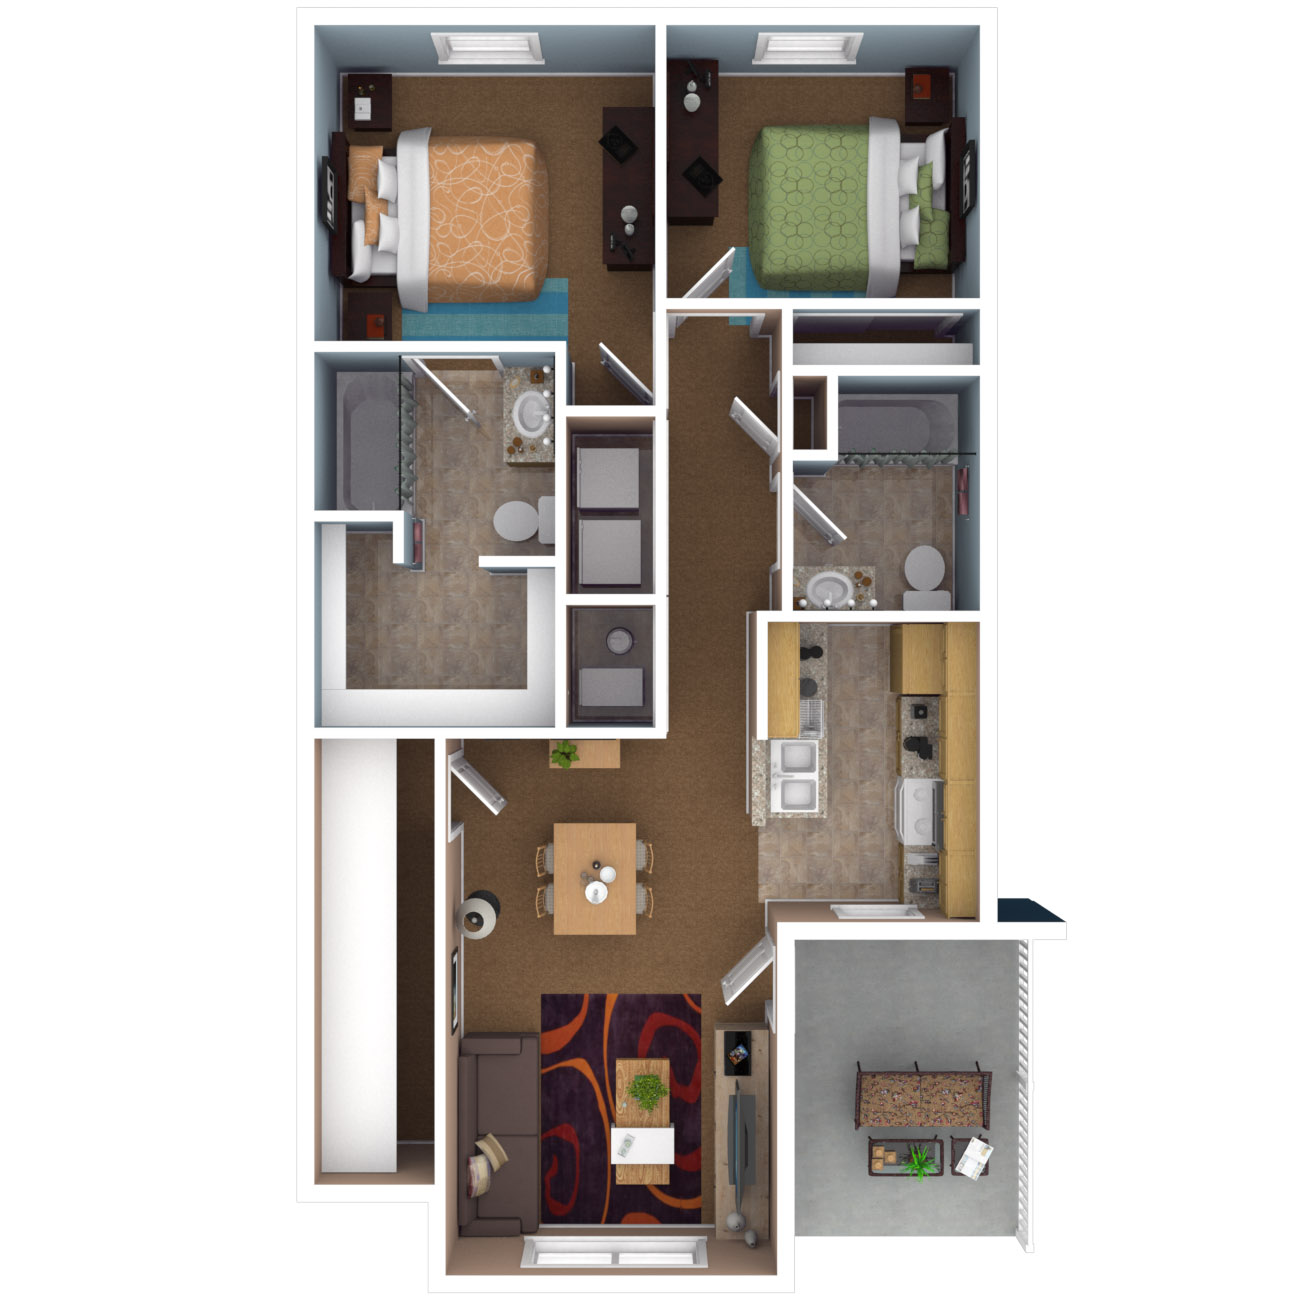 Apartments in indianapolis floor plans for 2 bedroom 2 bath apartment floor plans